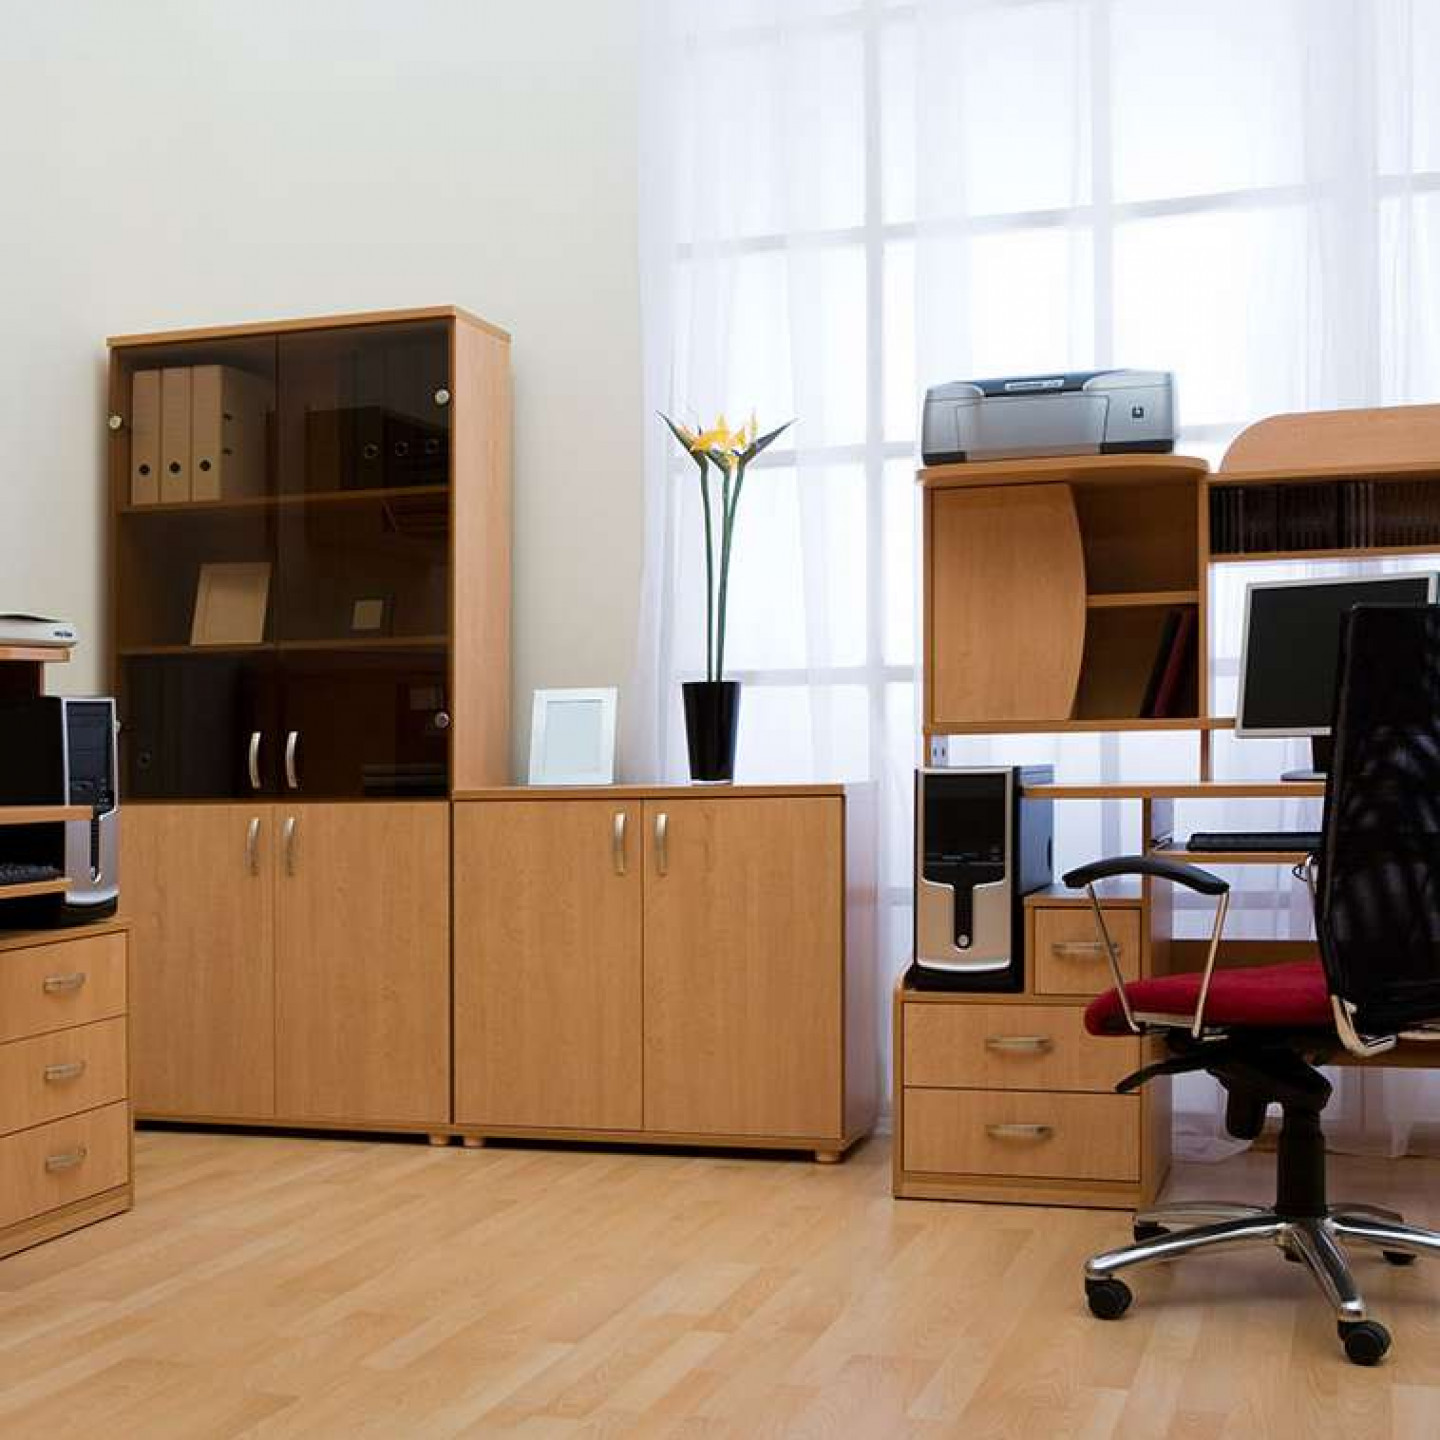 4 reasons to install custom commercial cabinets